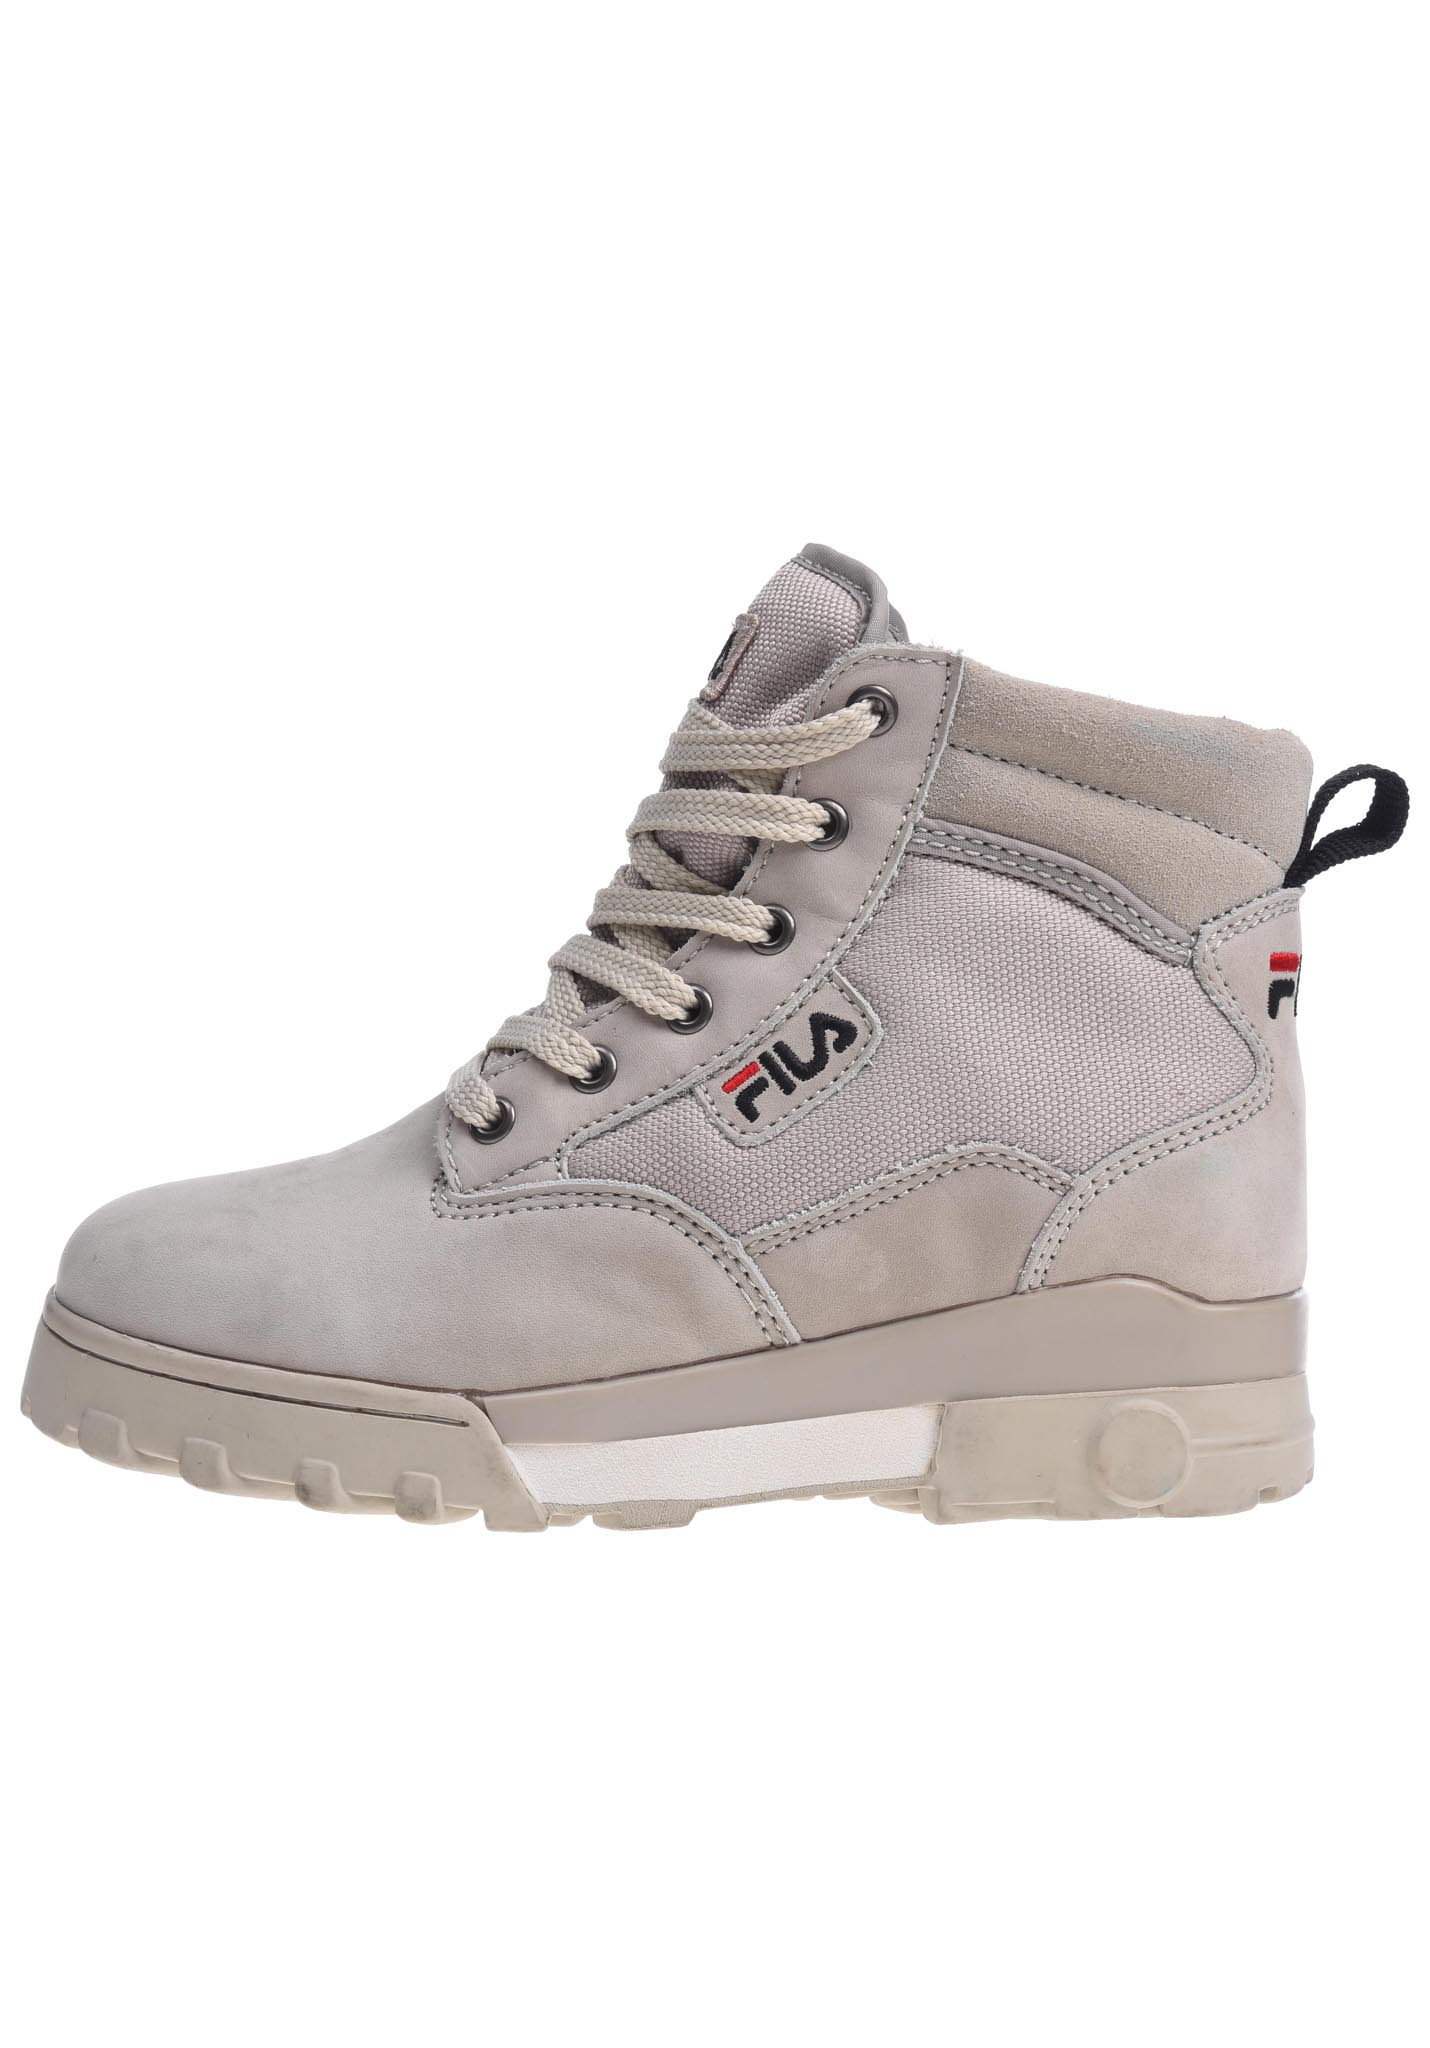 3e738660a6d5 Fila Heritage Grunge MID - Boots for Women - Grey - Planet Sports